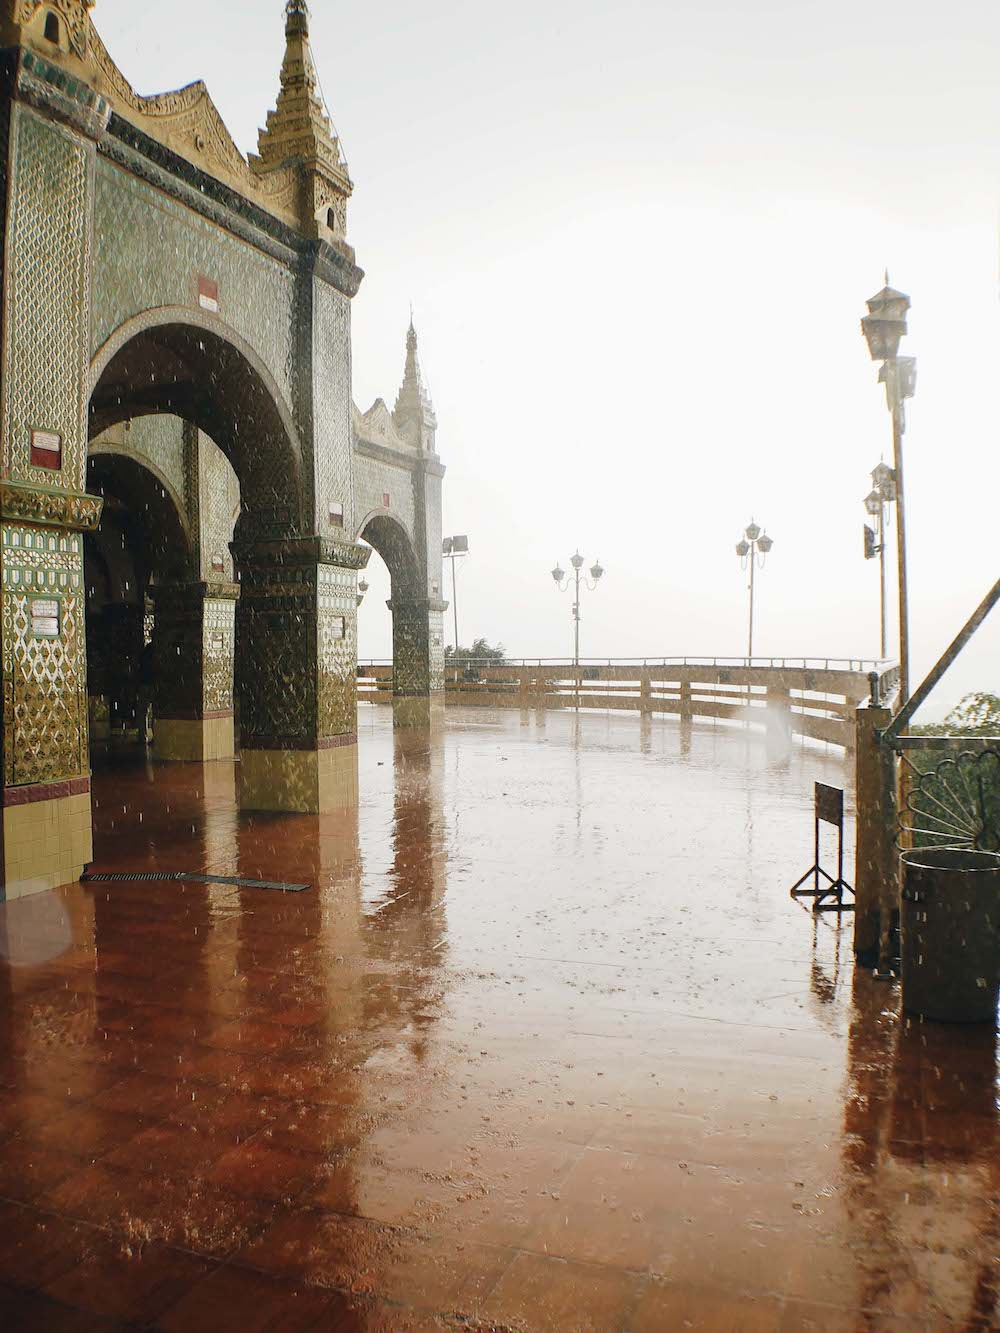 Raining at Mandalay Hill